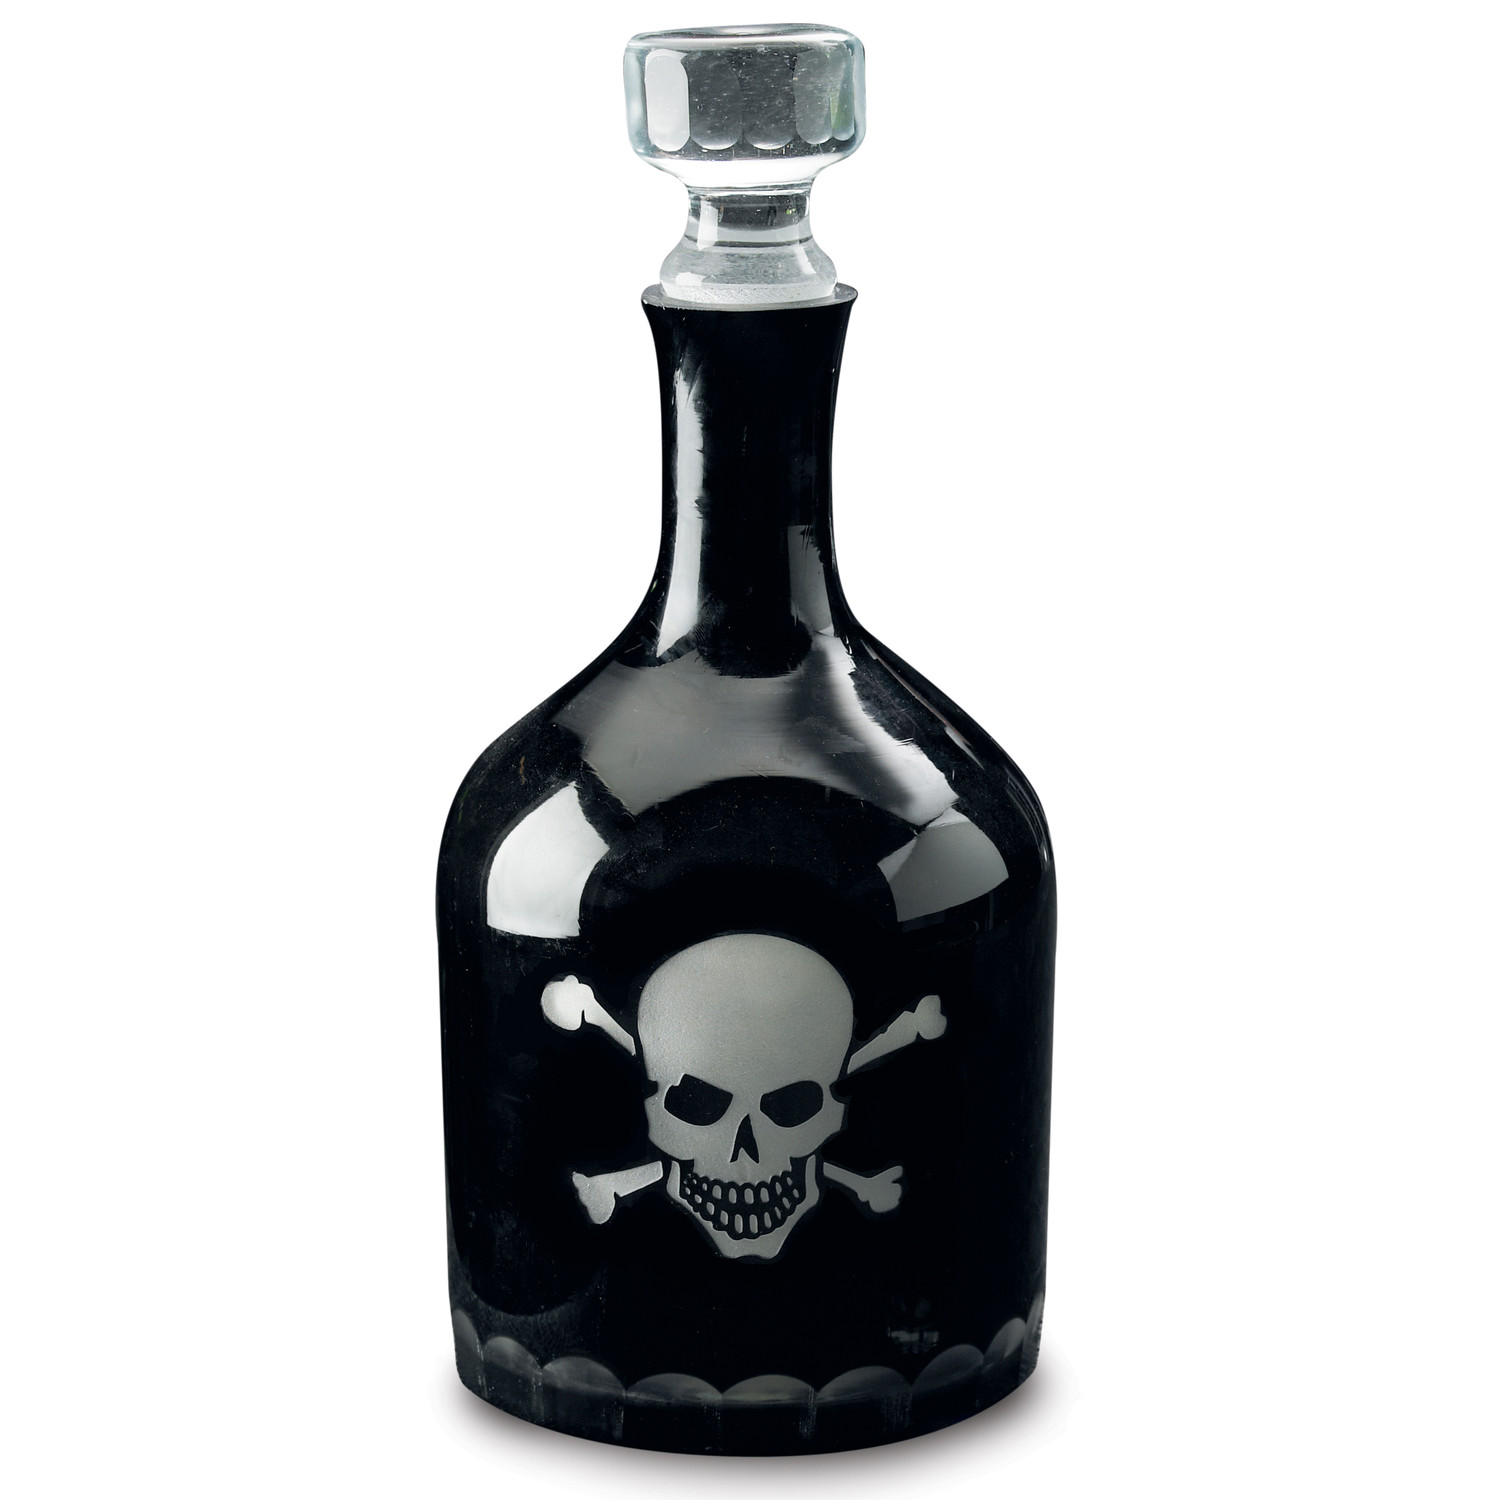 St.-Croix-Kindwer-Skull-and-Crossbones-Etched-Glass-Decanter-A1125.jpg